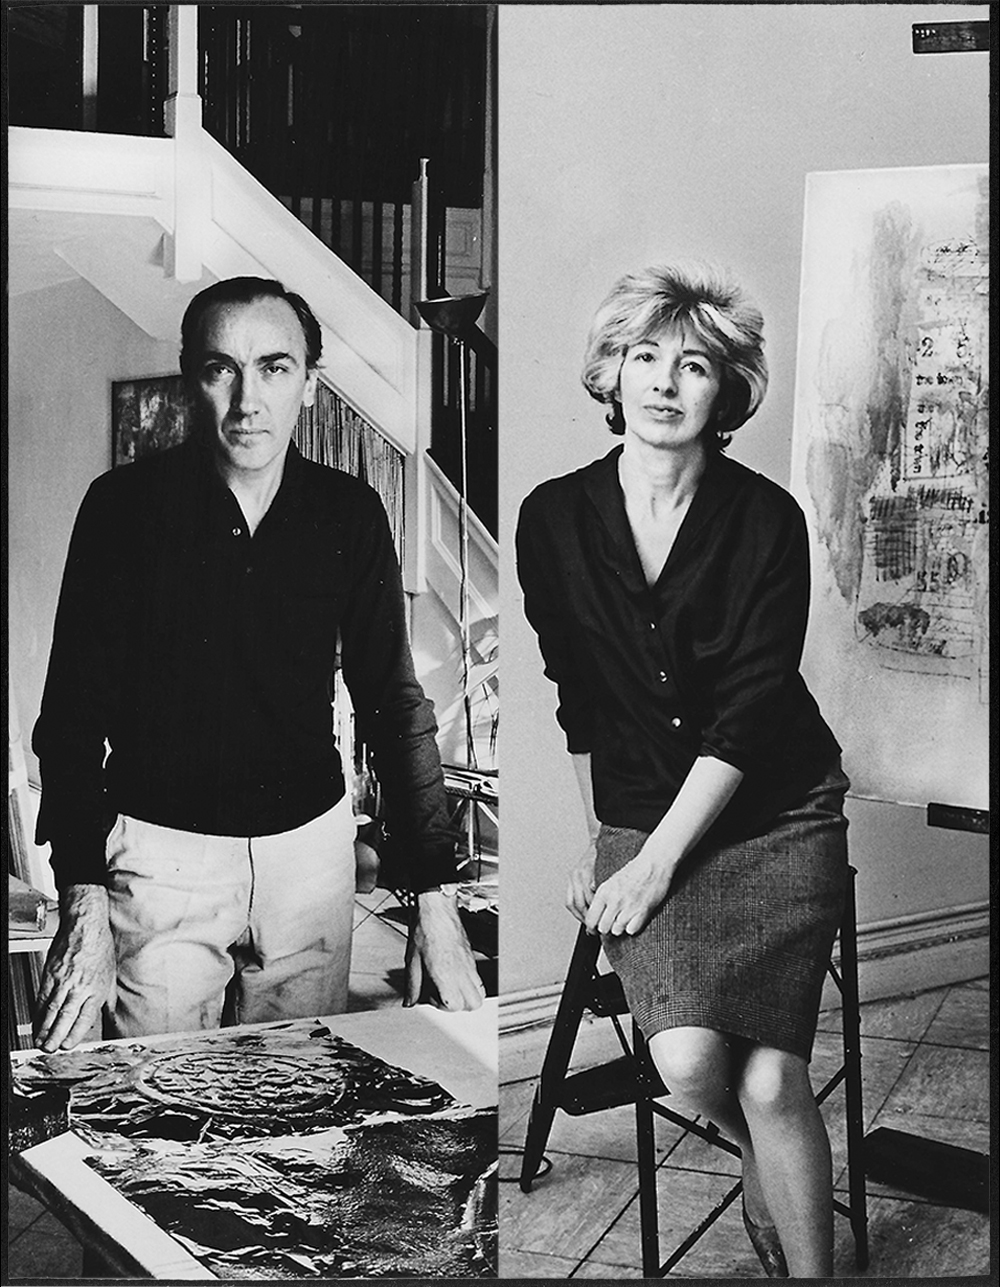 """Left image: Lisl Steiner, José Antonio Fernández-Muro in his studio on East 50th Street, New York, New York City, 1964. Chromogenic print from original negative, 2019 (1964), 8 1/2"""" x 11"""". Right image: Lisl Steiner, Sarah Grilo in her studio on East 50th Street, New York, New York City, 1964. Chromogenic print from original negative, 2019 (1964), 8 1/2"""" x 11"""". Both images: Courtesy of the  Estate of Sarah Grilo and José Antonio Fernández-Muro  and reproduced with permission from Lisl Steiner. On loan at the Institute for Studies on Latin American Art (ISLAA)."""